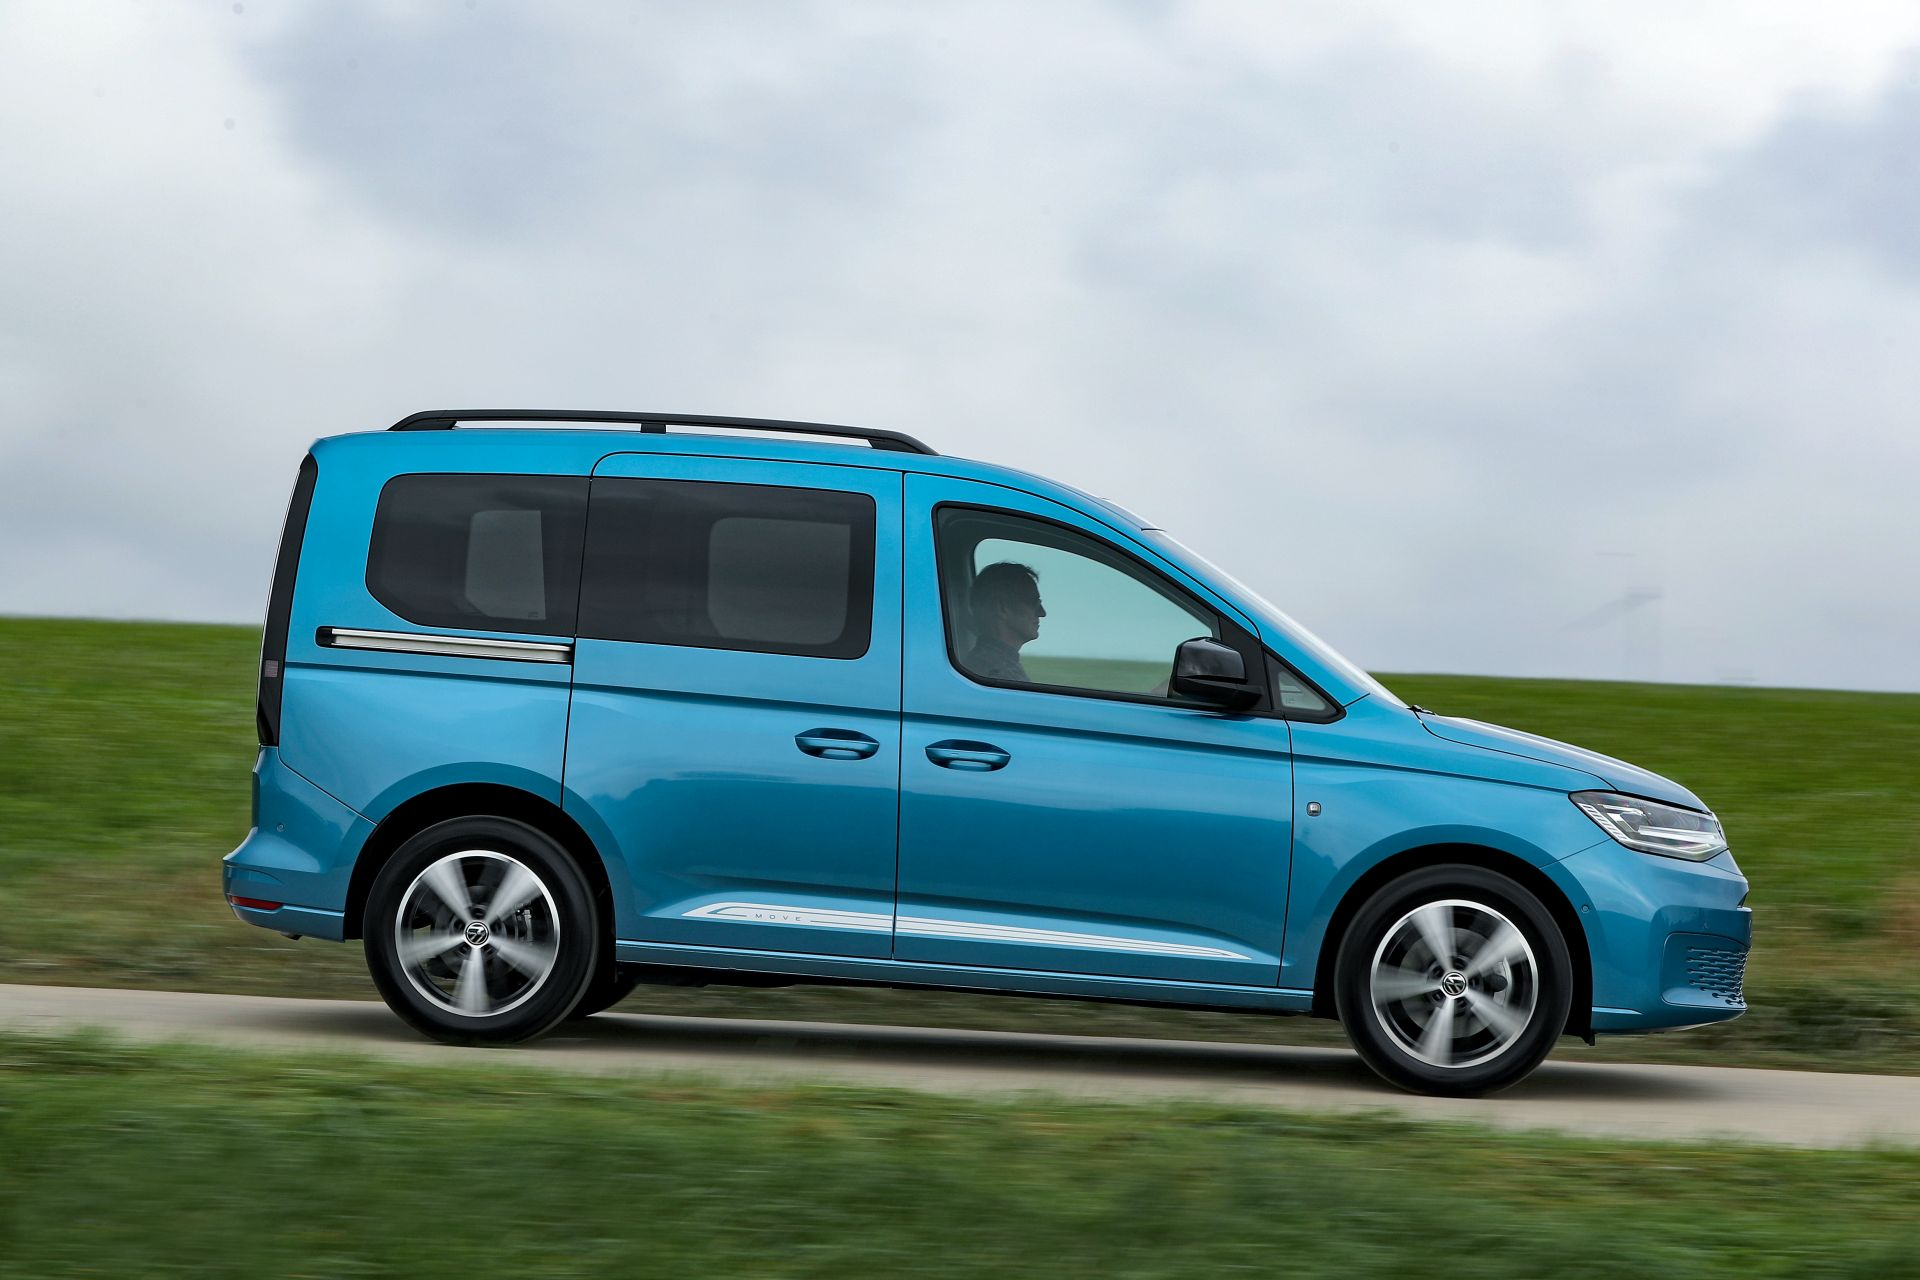 2021 Volkswagen Caddy Light Commercial Vehicle Priced From ...